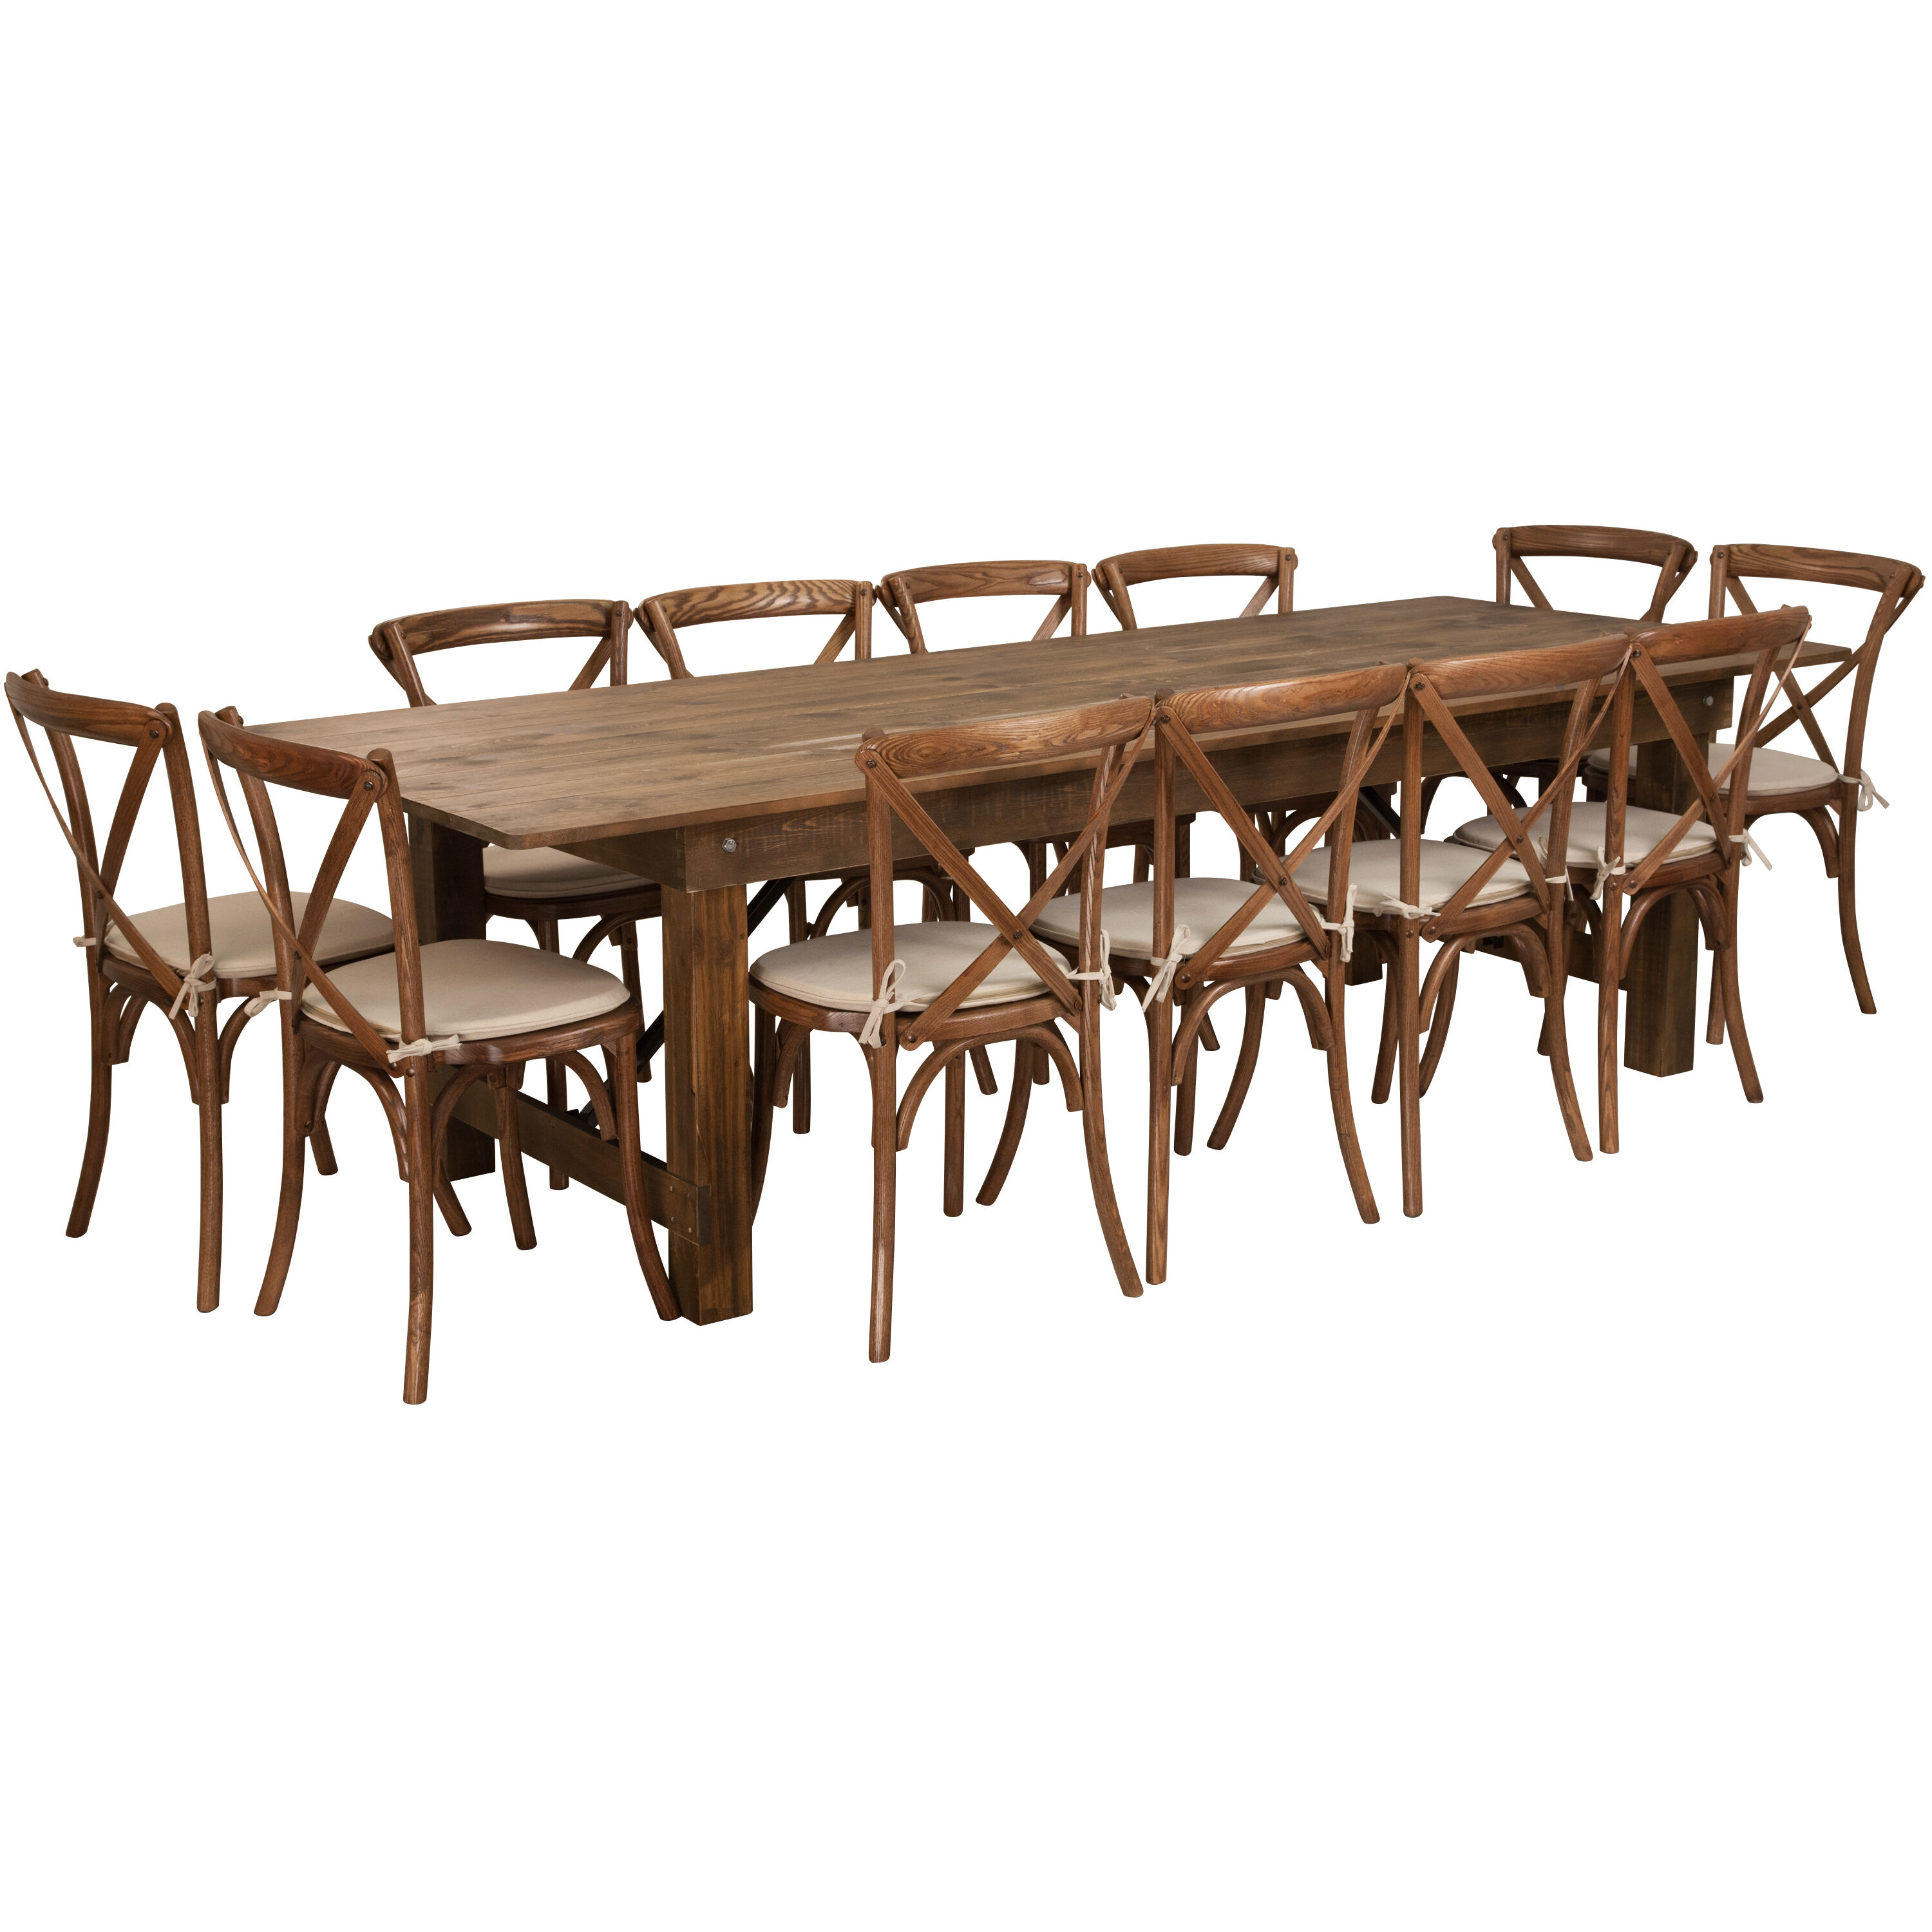 rustic farm table and chairs cream leather occasional 9 x40 12 chair set xa 16 gg stackchairs4less com